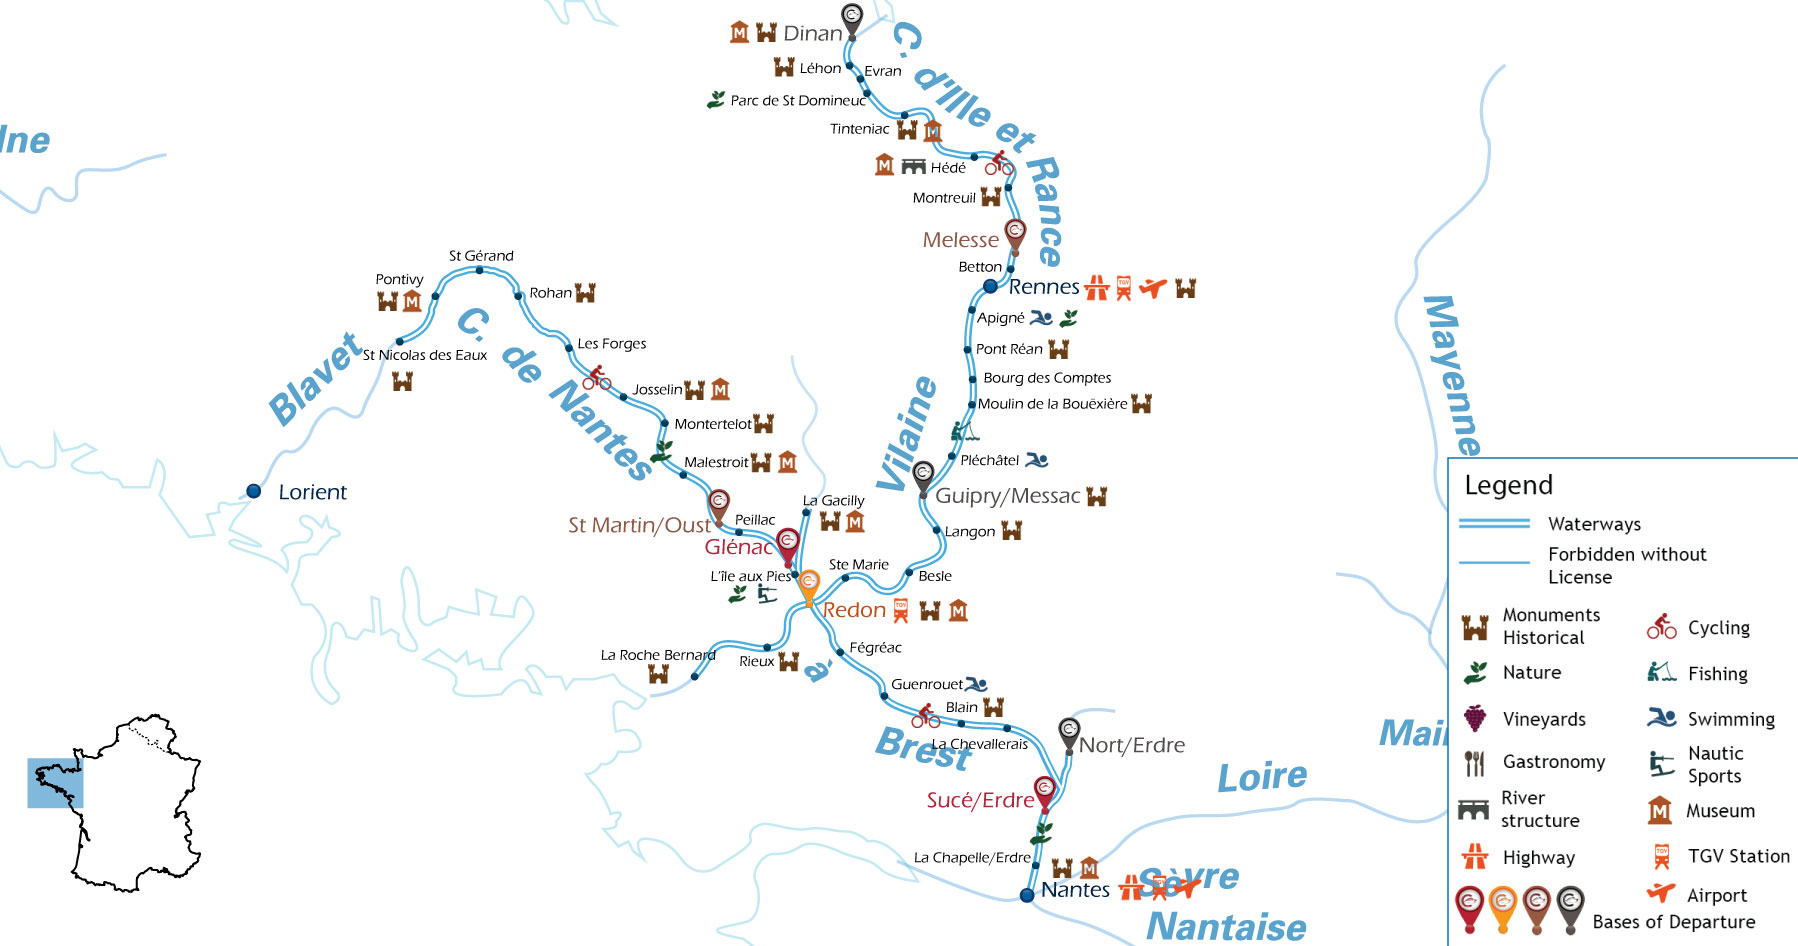 Zoom Waterways Map for Boating Holidays in Brittany